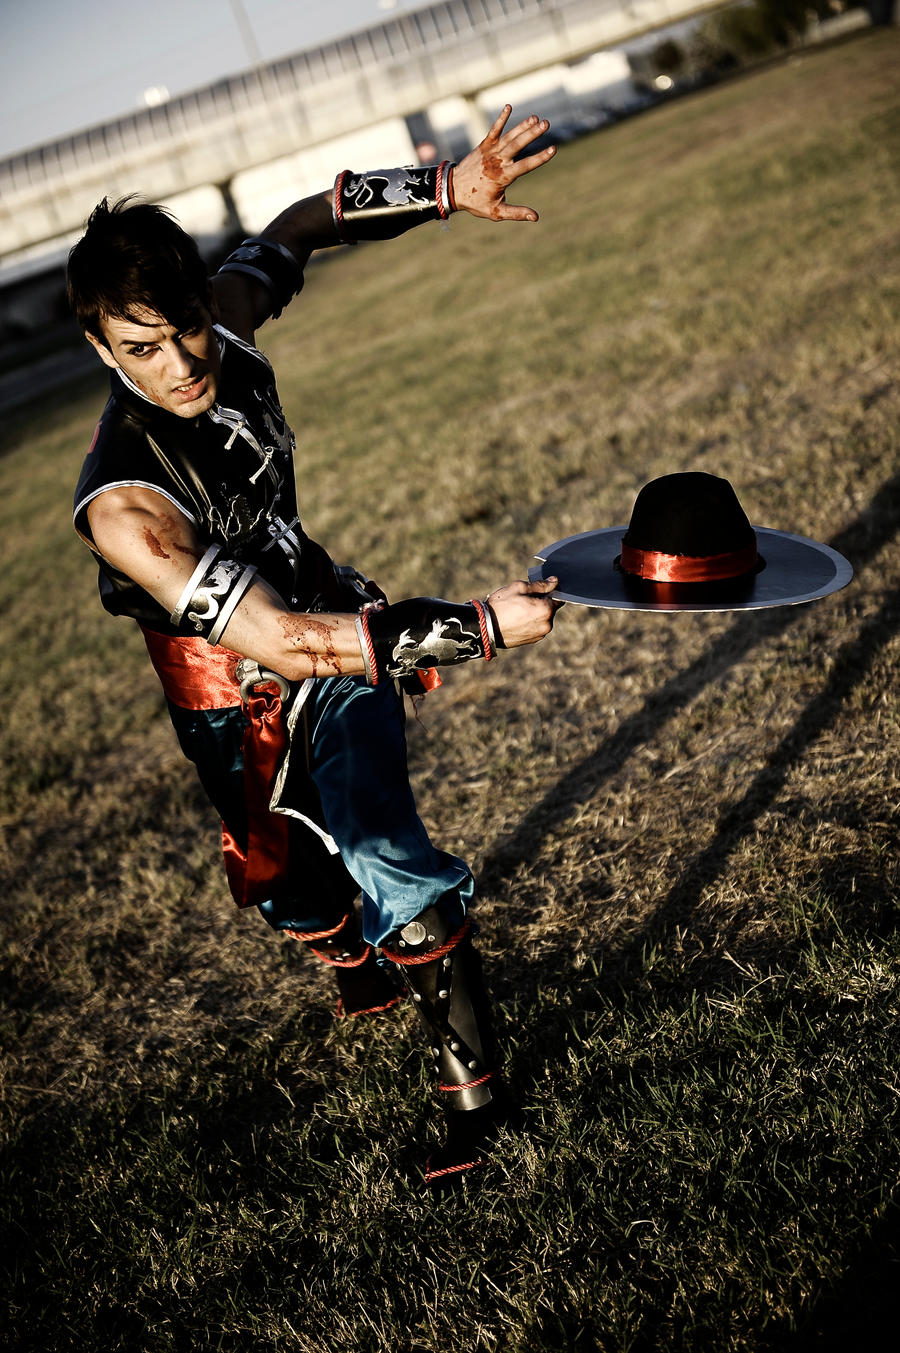 Leon Chiro as Kung Lao - MK9 Romics 2011 D.Germani by LeonChiroCosplayArt